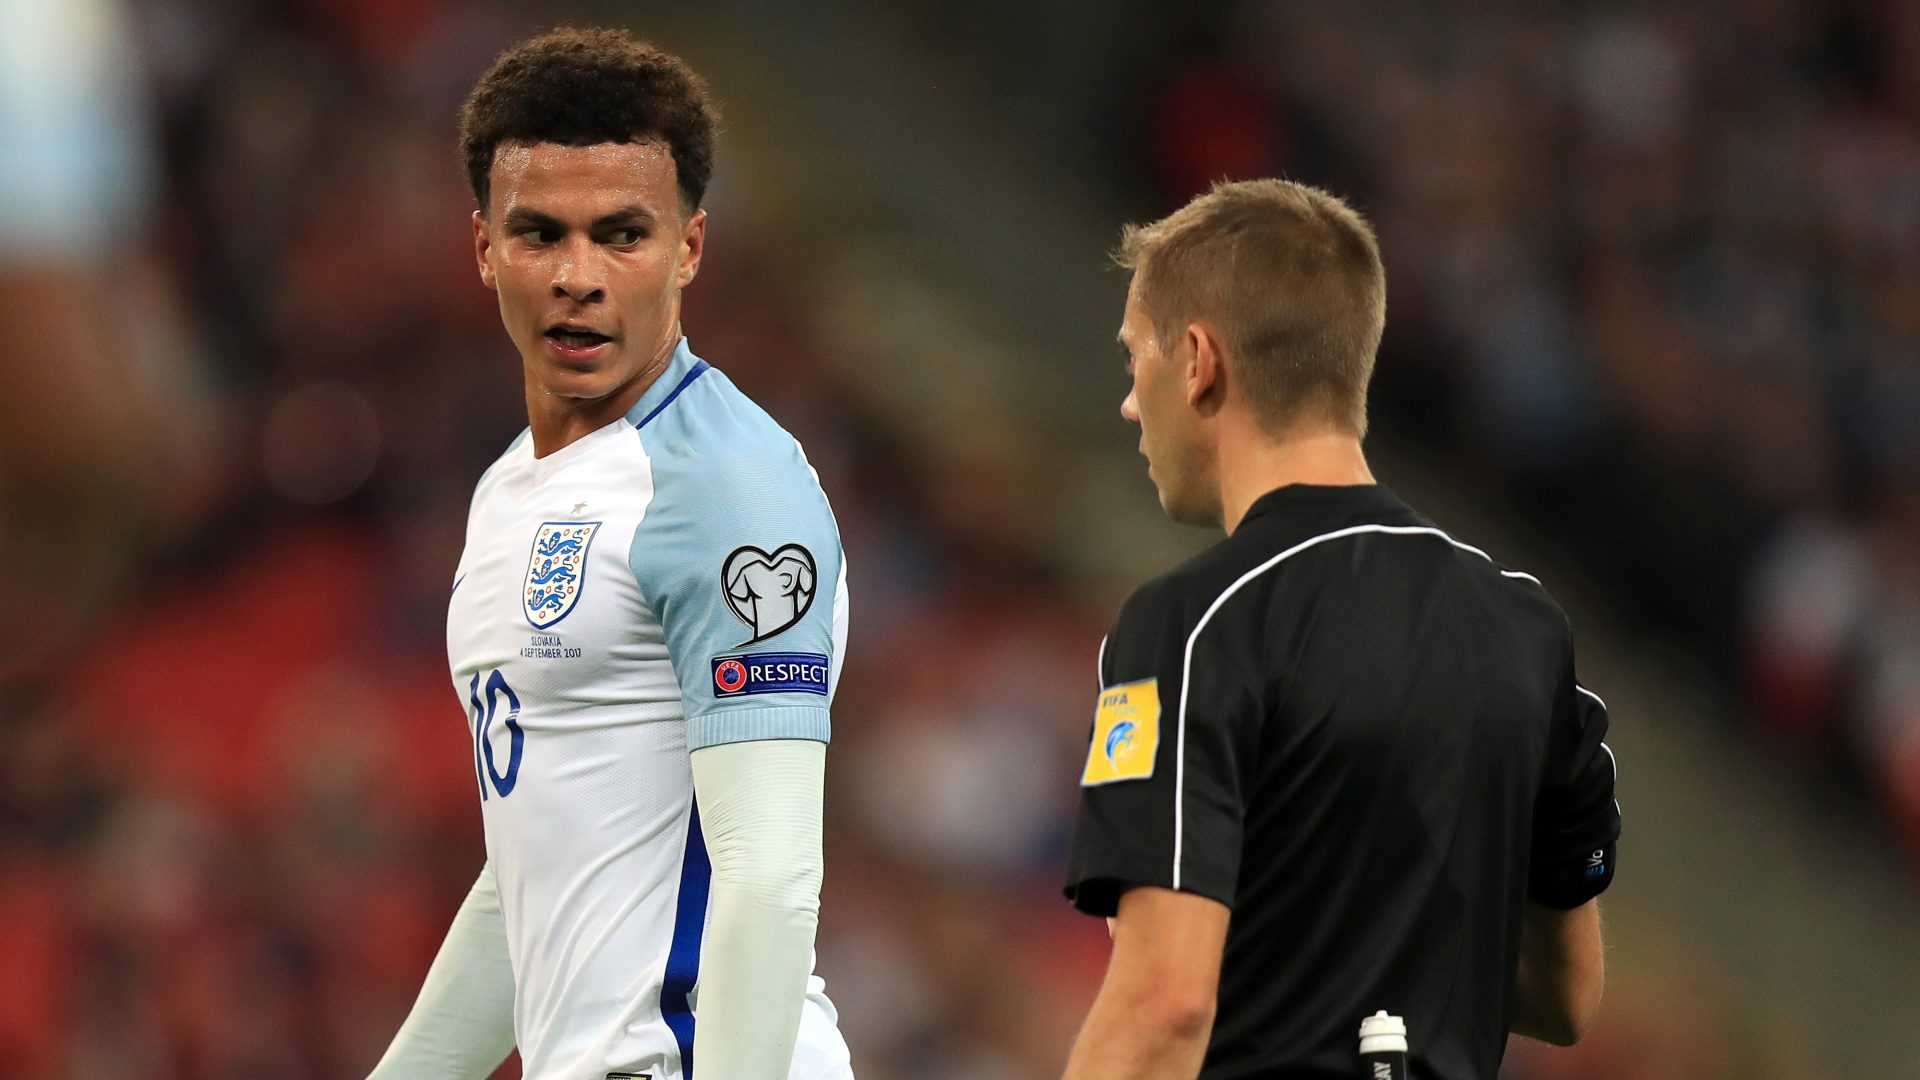 England midfielder Dele Alli speaks with referee Clement Turpin